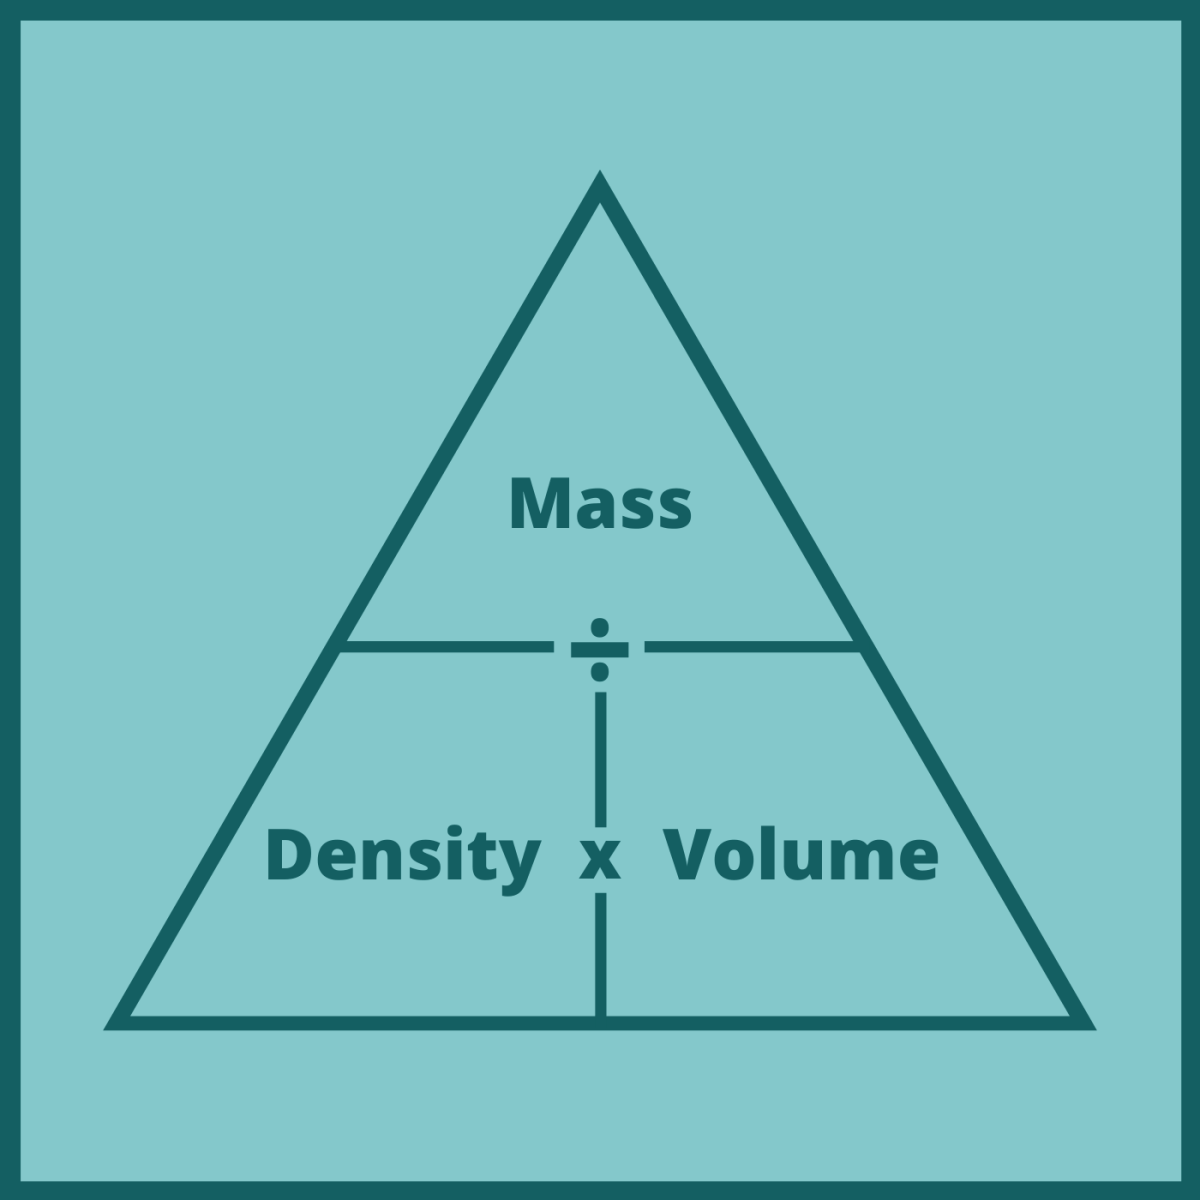 How to find volume with density and mass?